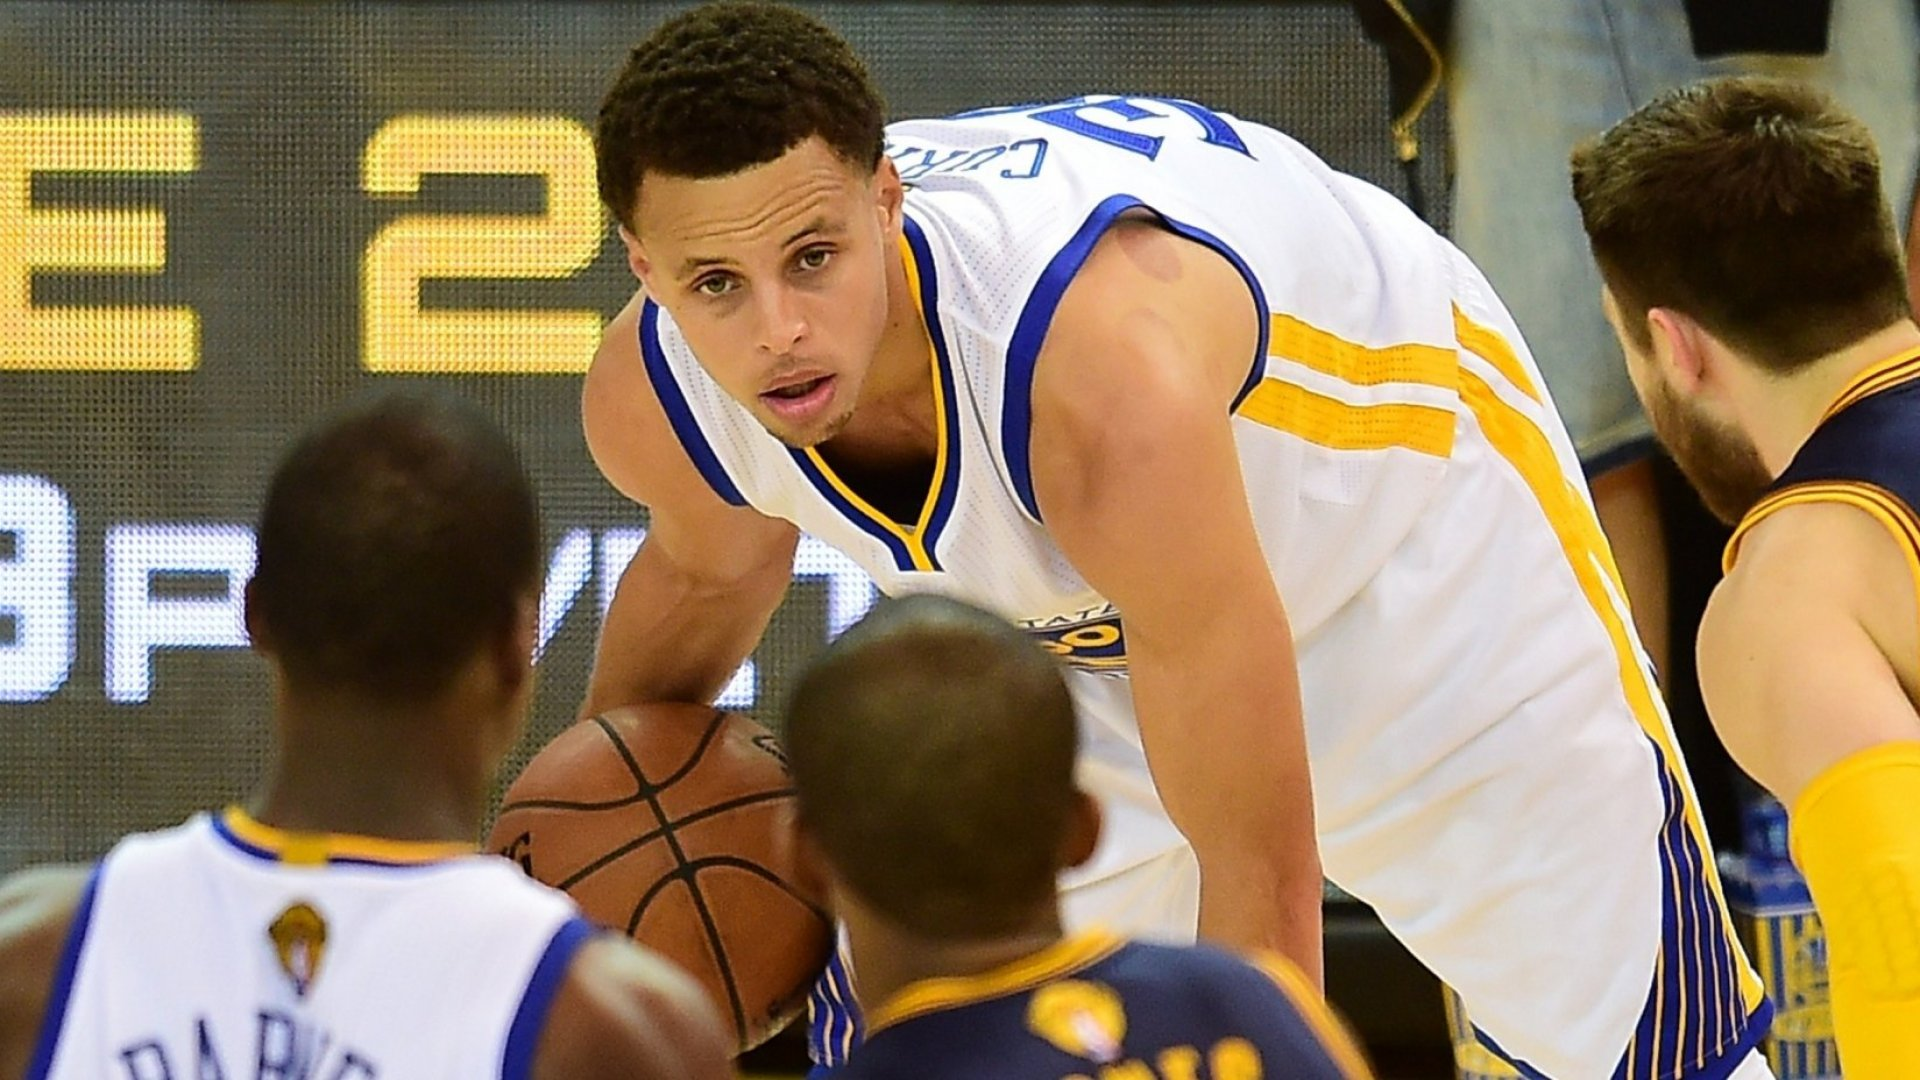 The Fascinating Pregame Routine of NBA MVP Stephen Curry